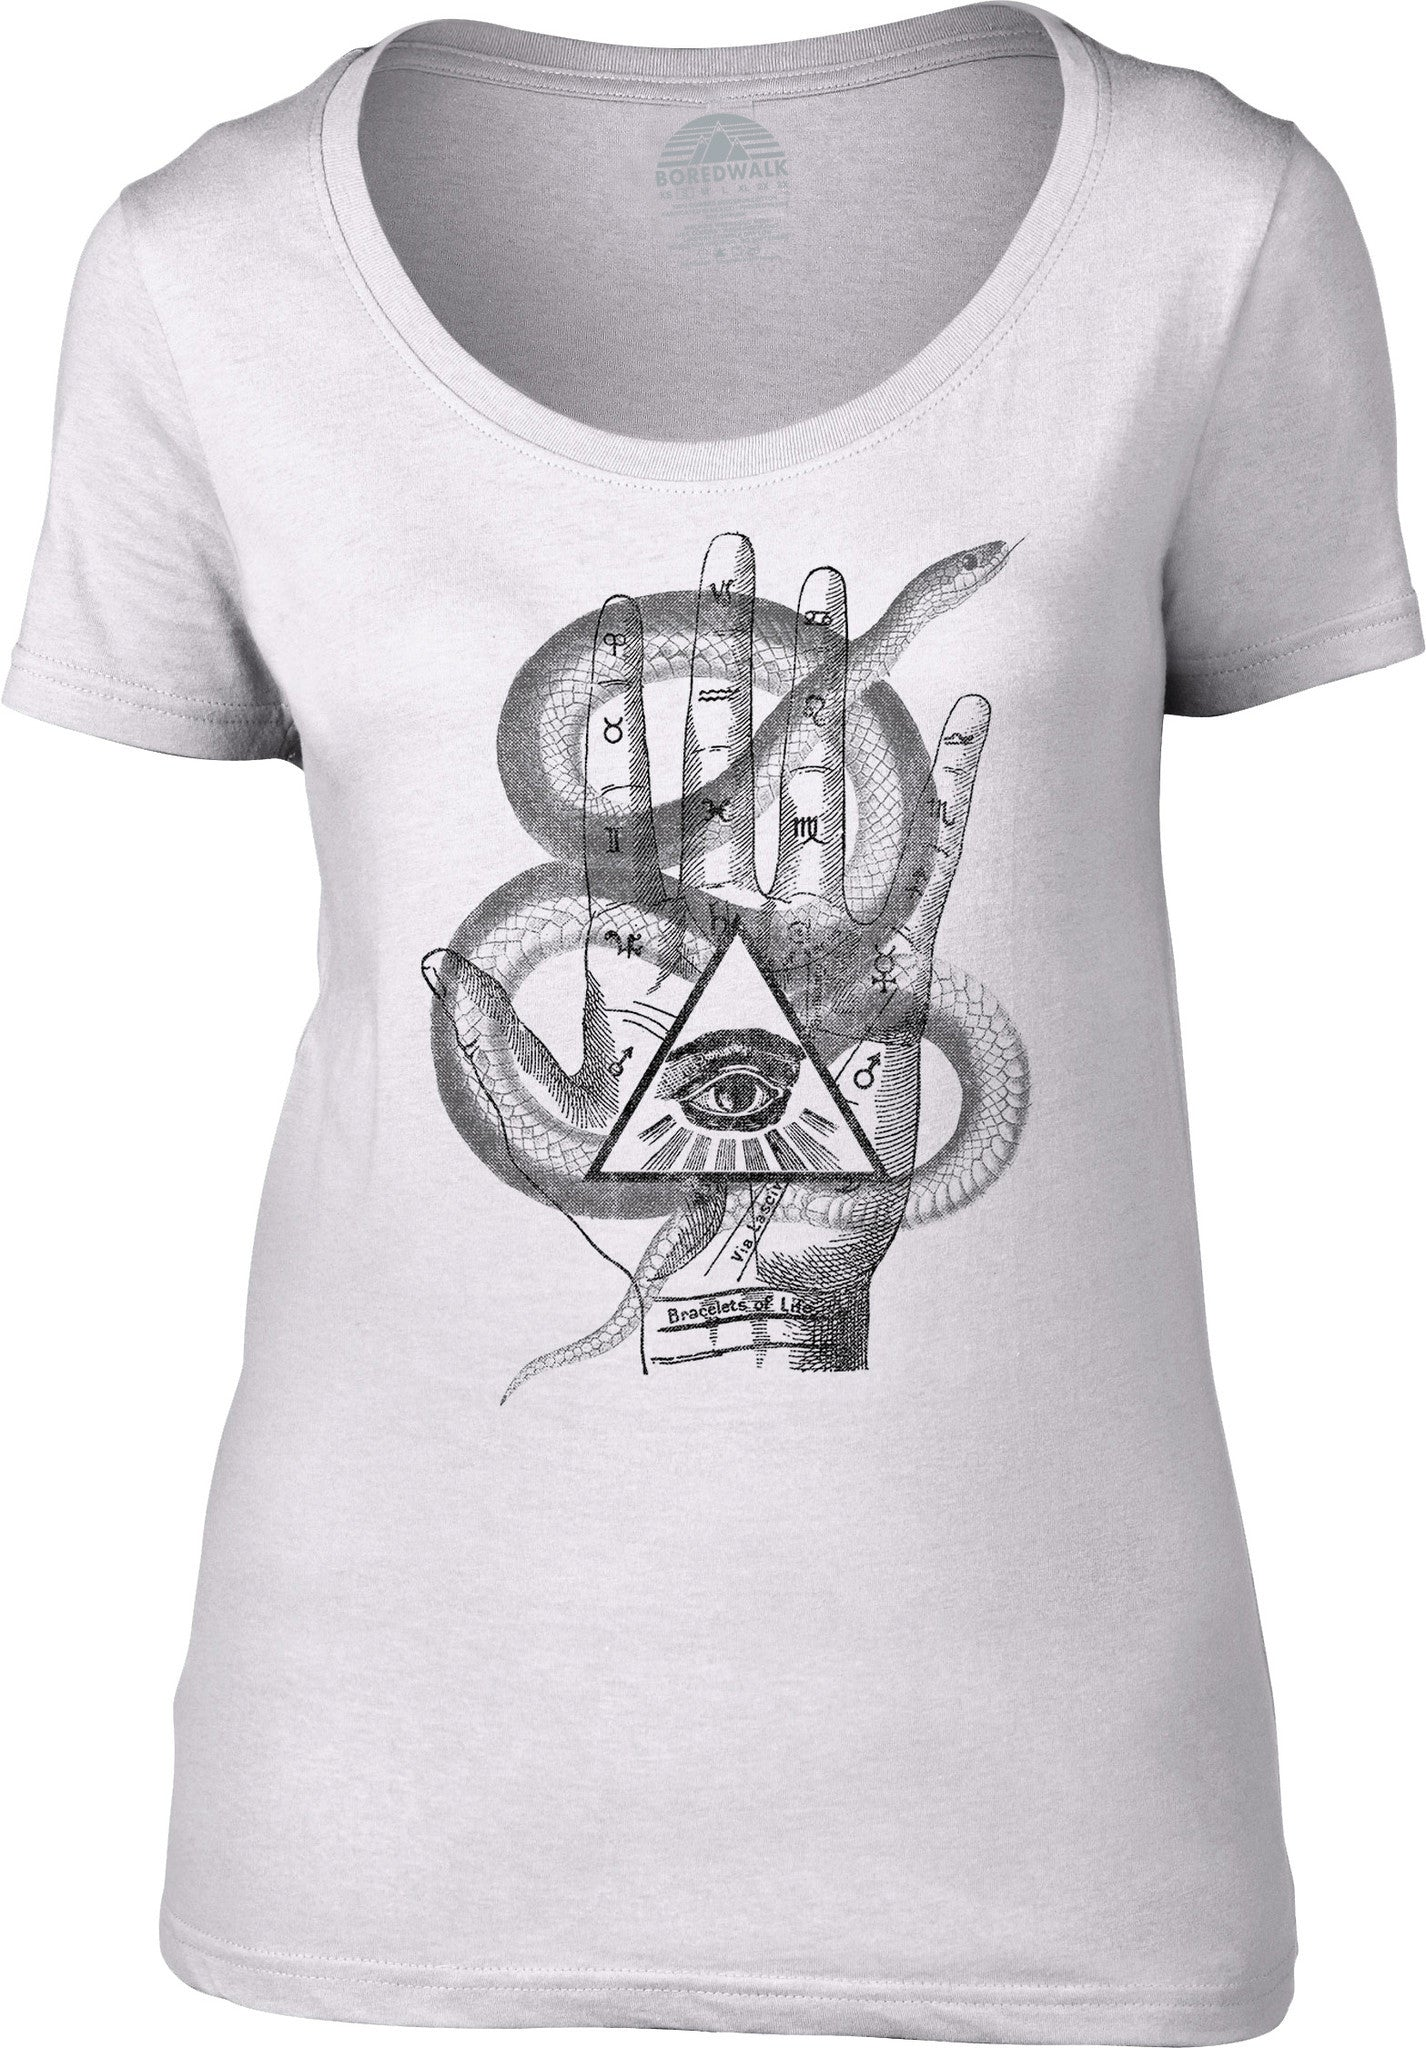 Women's Palmistry Gypsy Collage Scoop Neck Shirt